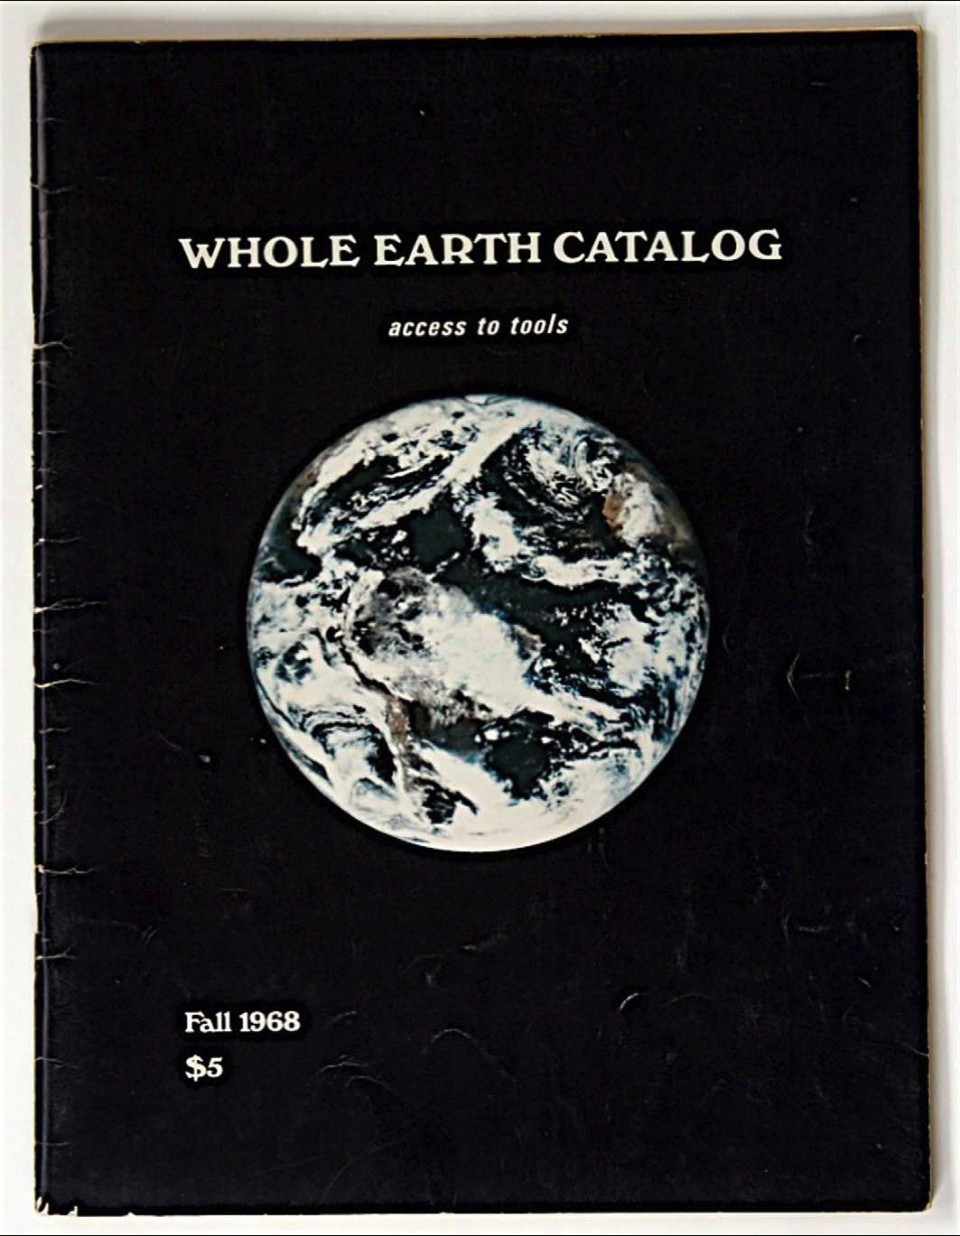 Brand's Whole Earth Catalog, introducing tools to shift human consciousness and culture